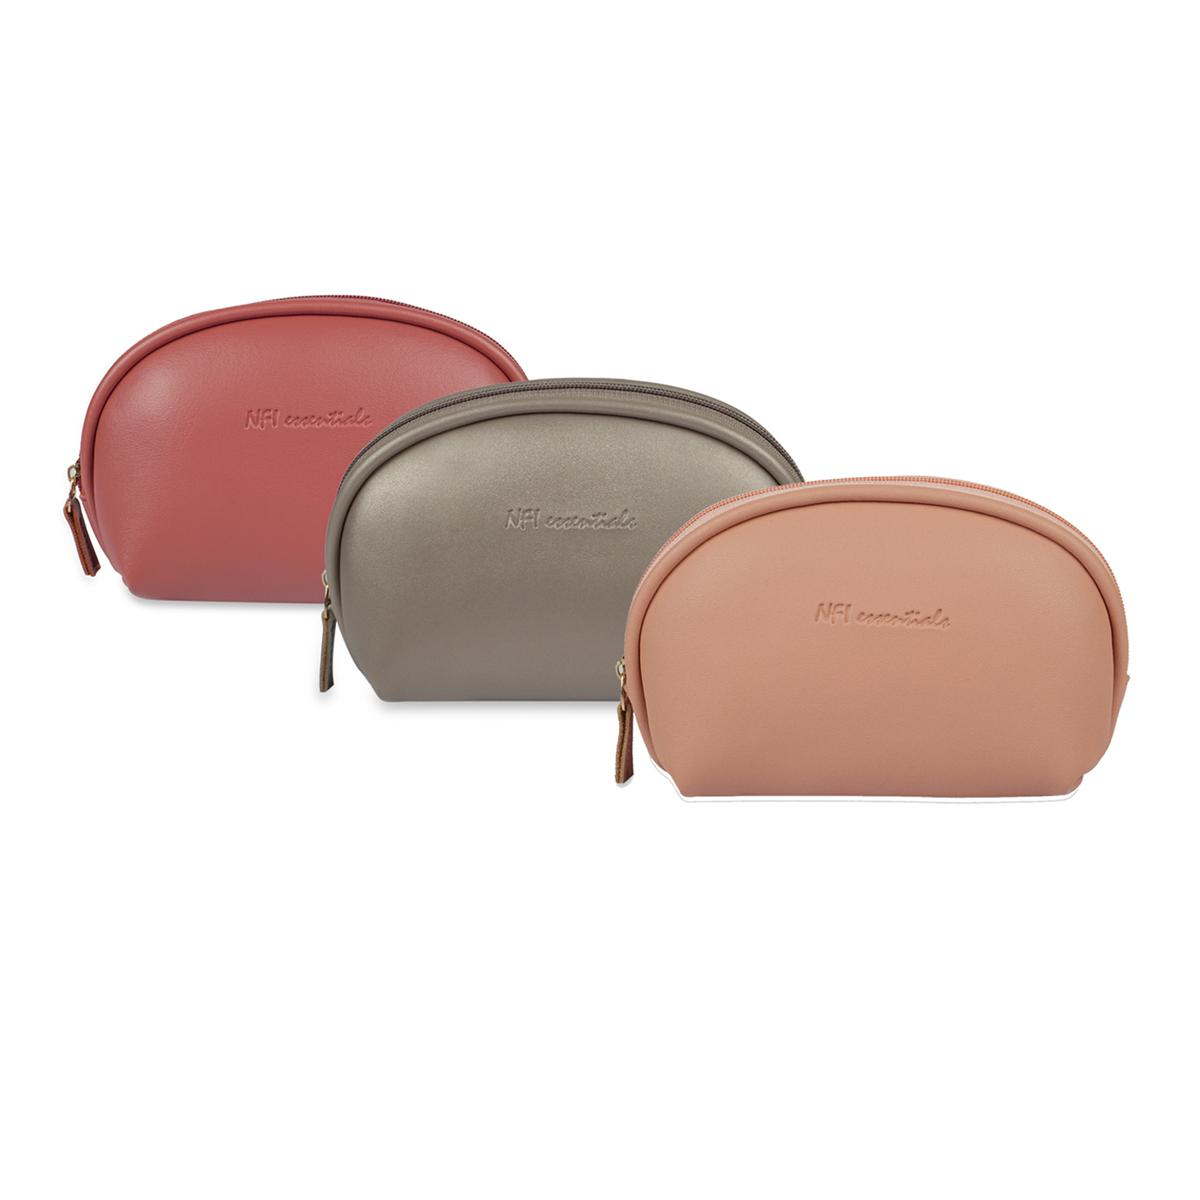 NFI essentials - Cosmetic Pouch | Travel Bag (Dark Pink, Light Pink & Silver)- Pack of 3